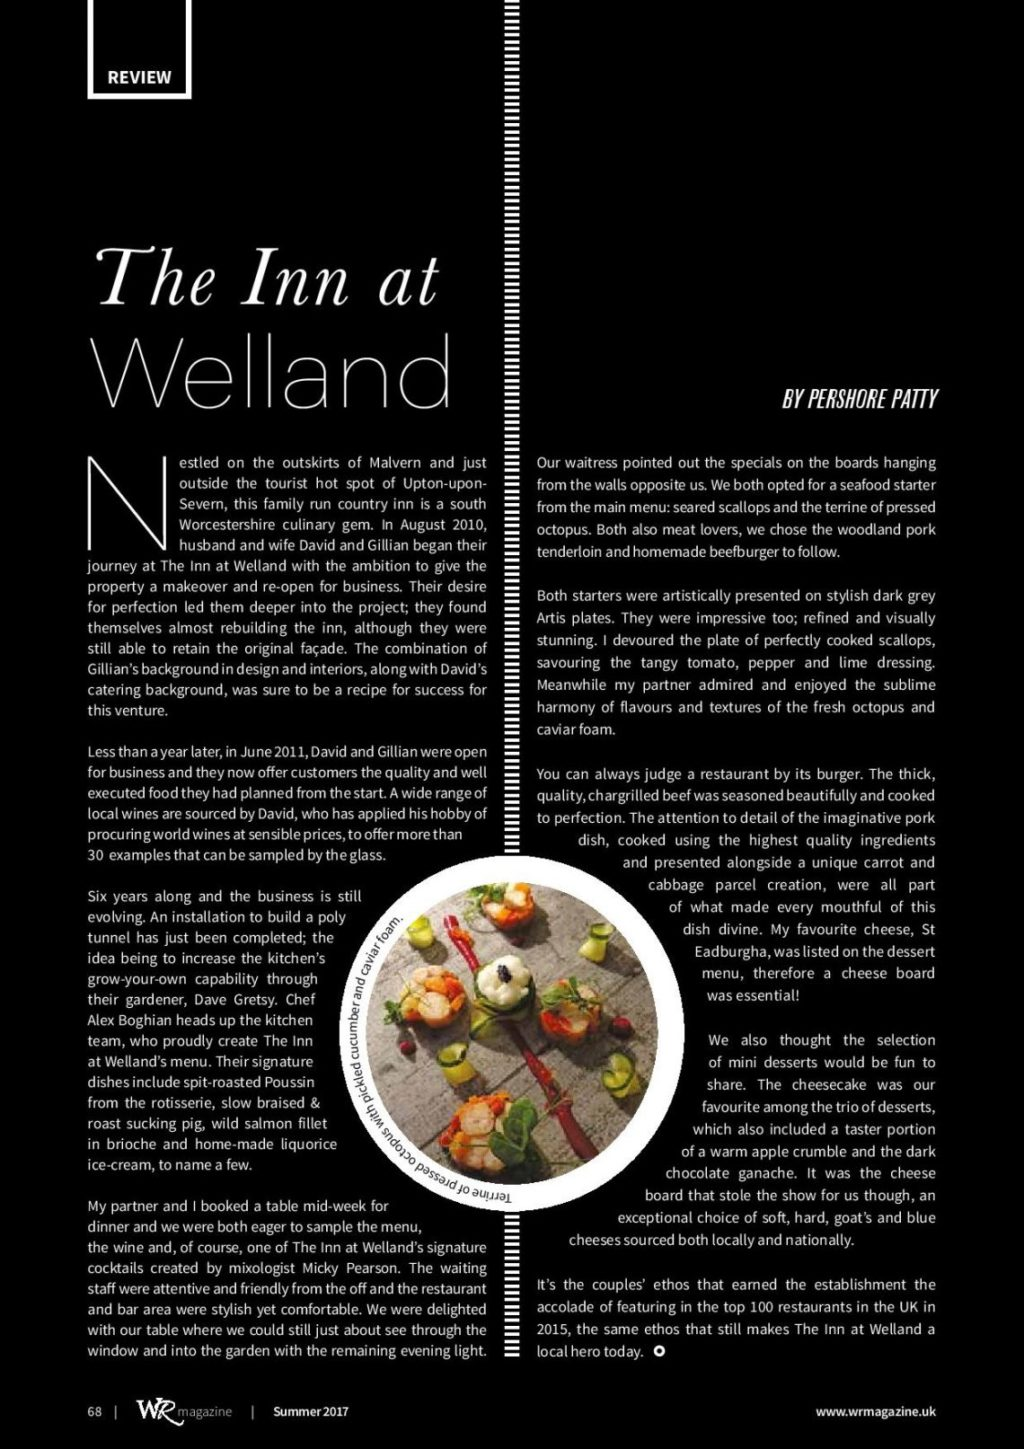 Restaurant Review: Inn at Welland, Malvern